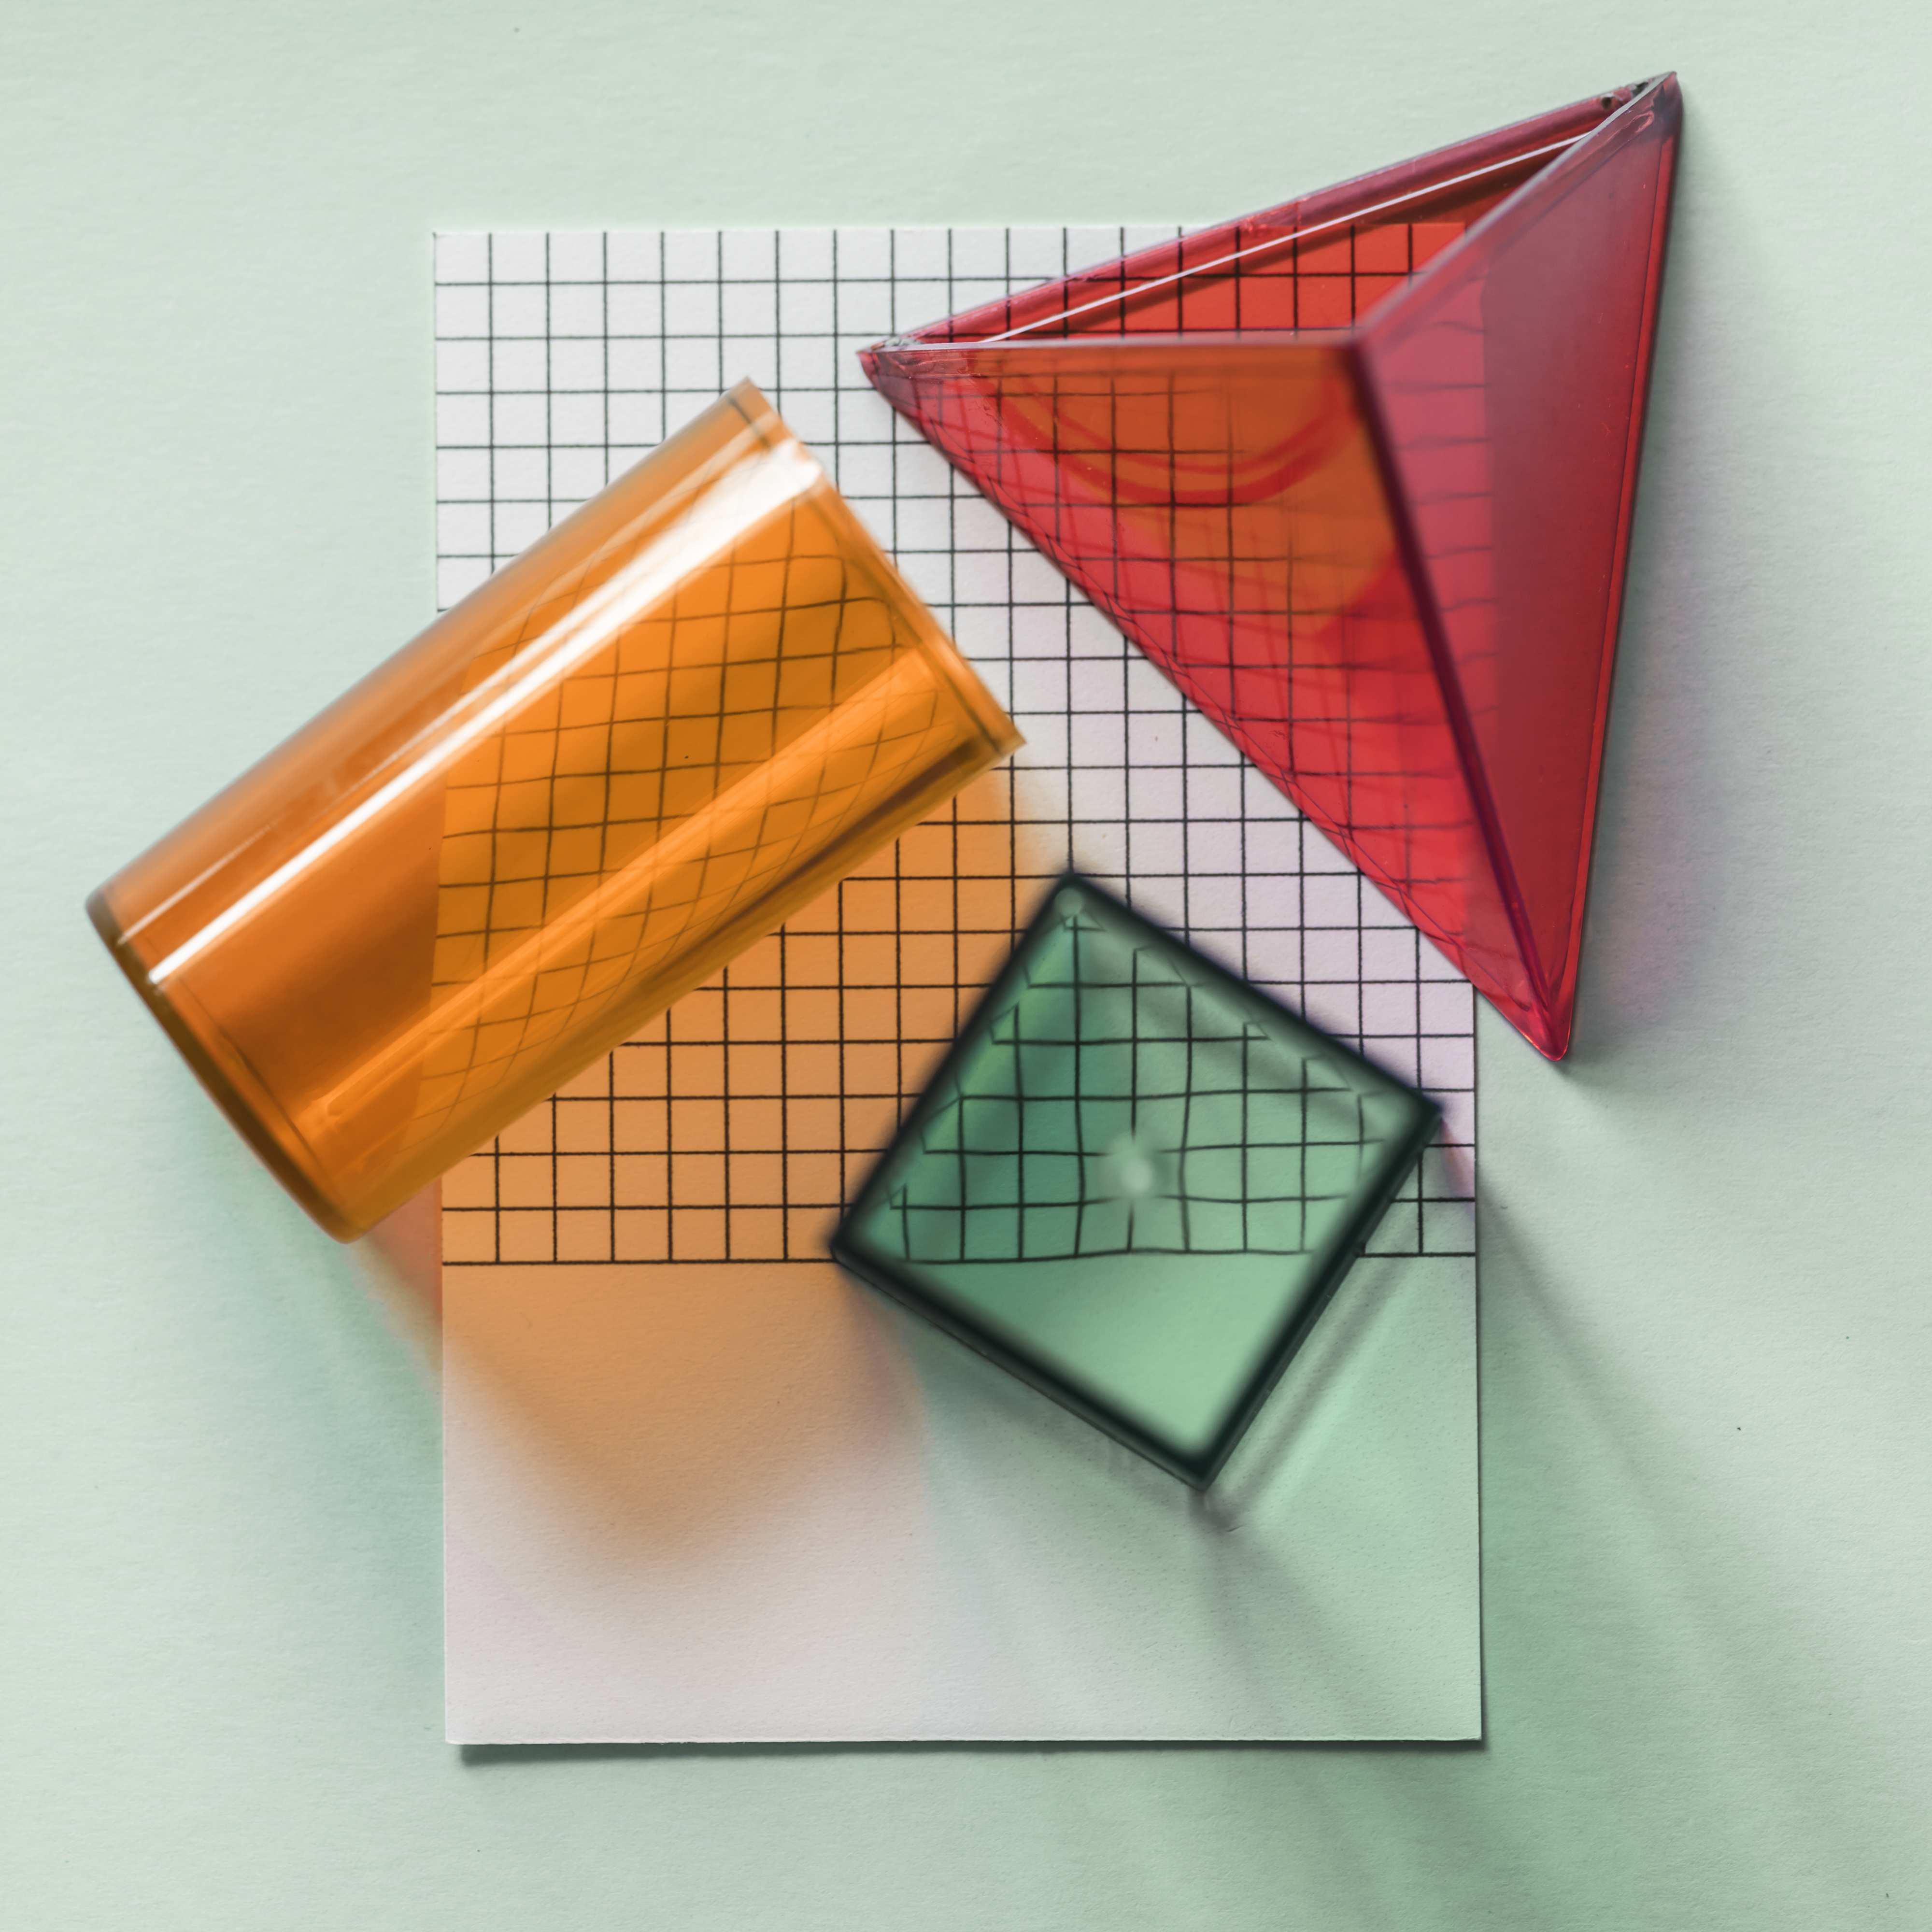 Geometrical cubes on a paper